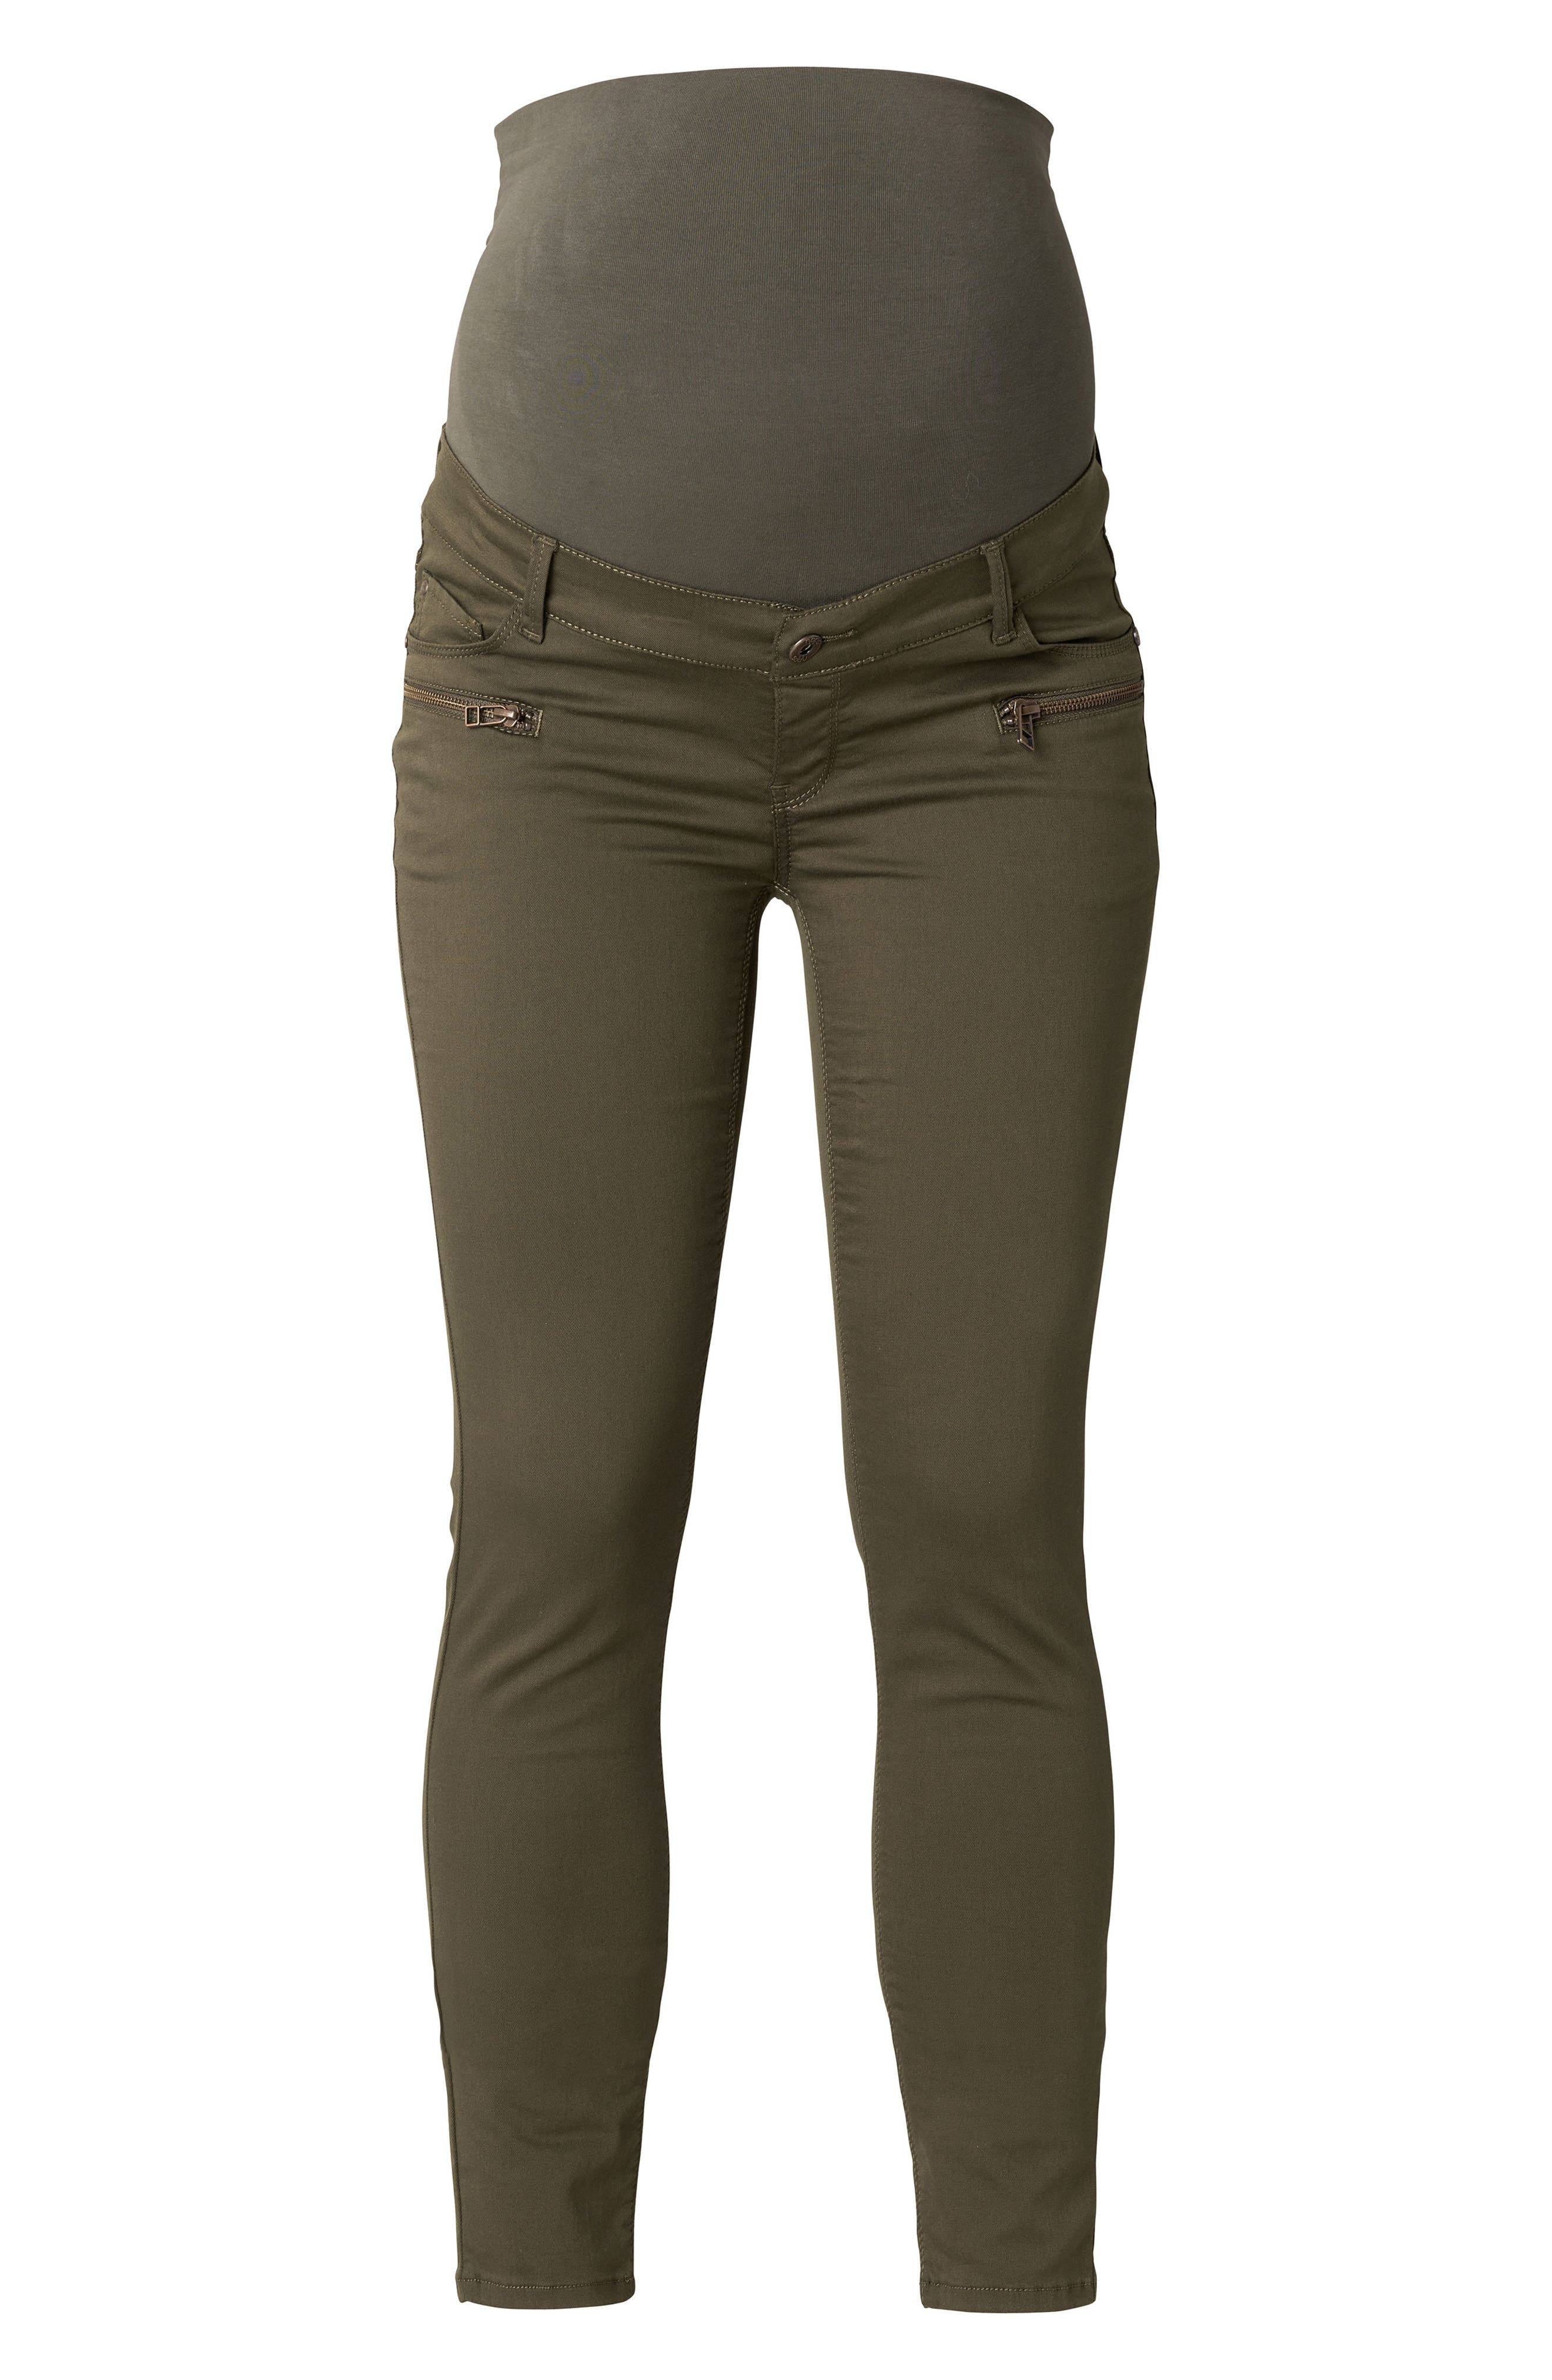 Noppies Honor Over the Belly Slim Maternity Jeans